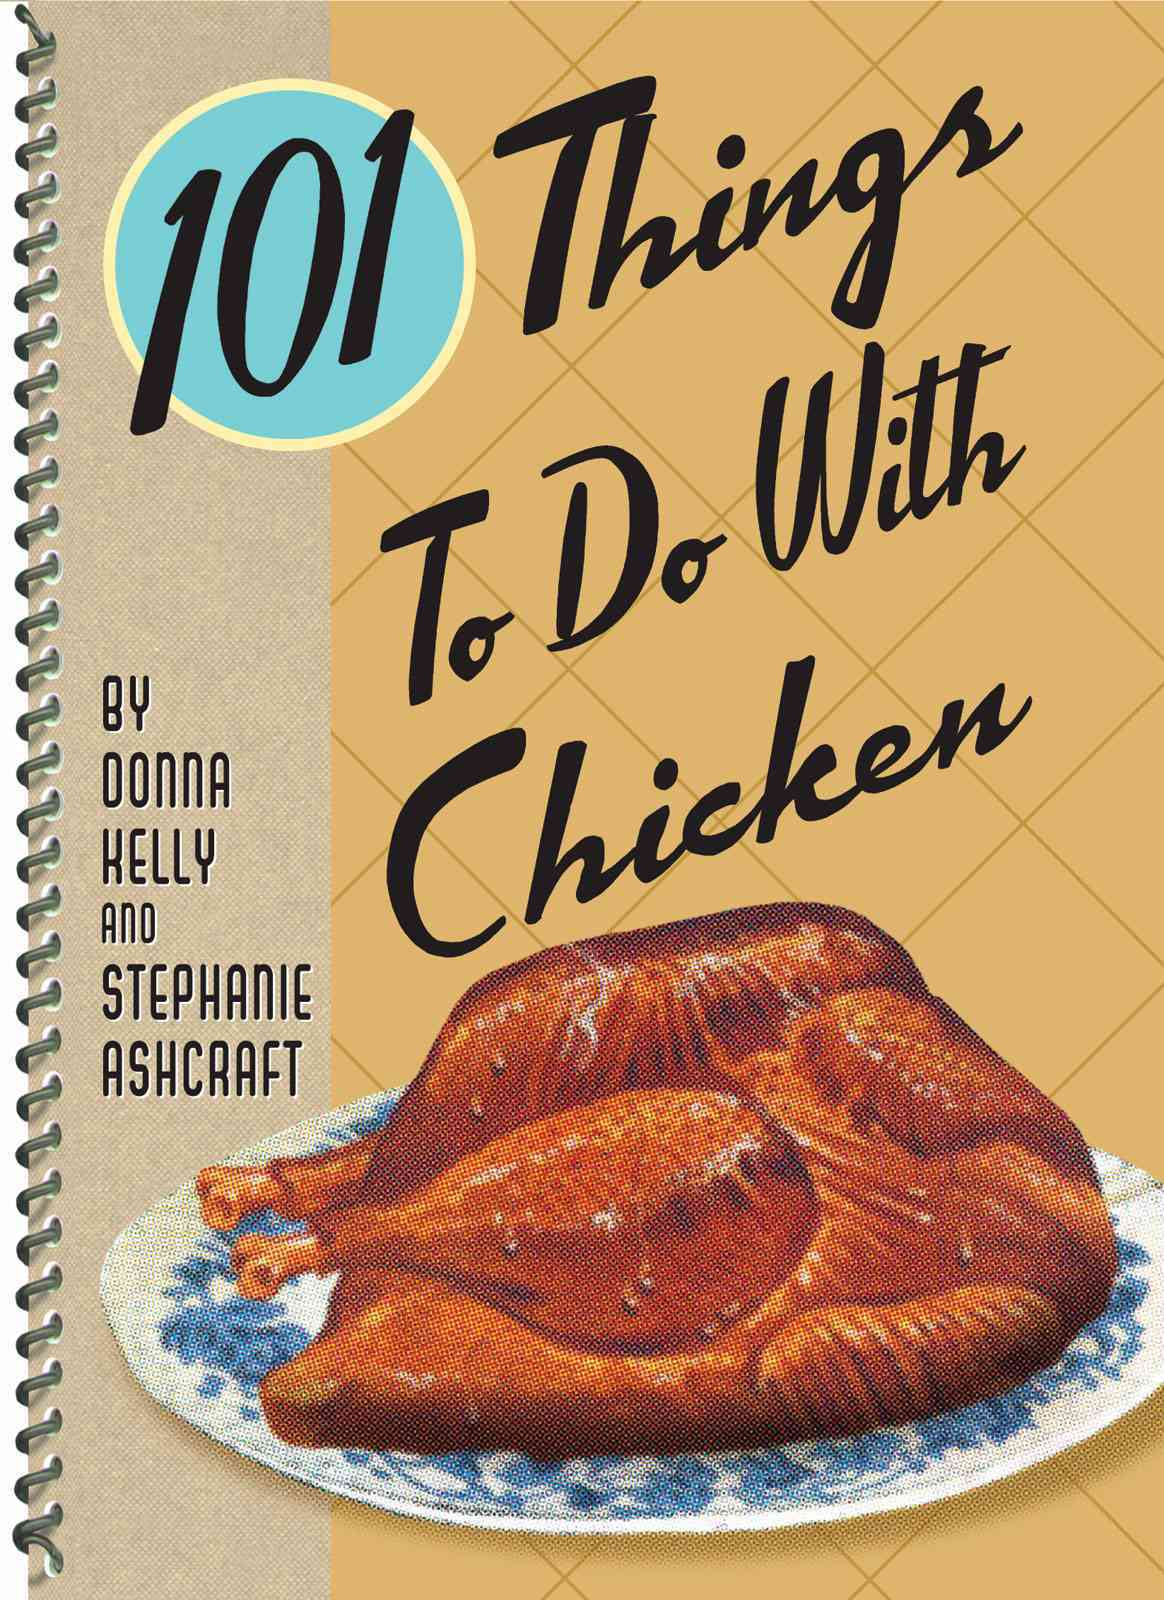 101 Things to Do With Chicken (Spiral bound)